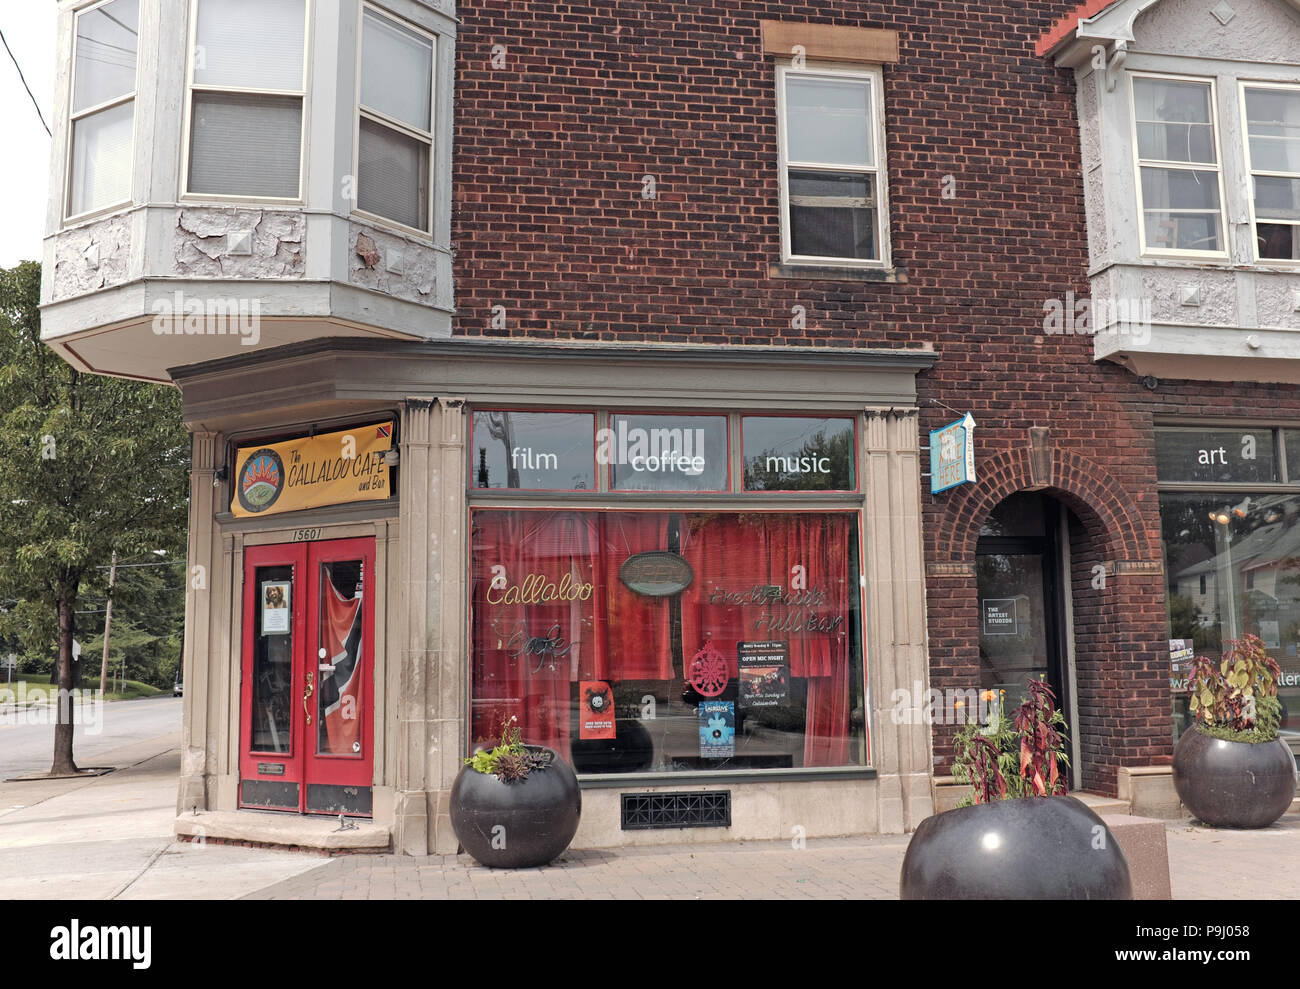 The Callaloo Cafe and Bar on East 156th and Waterloo Road in Cleveland, Ohio is one of many independent businesses making this area trendy. - Stock Image